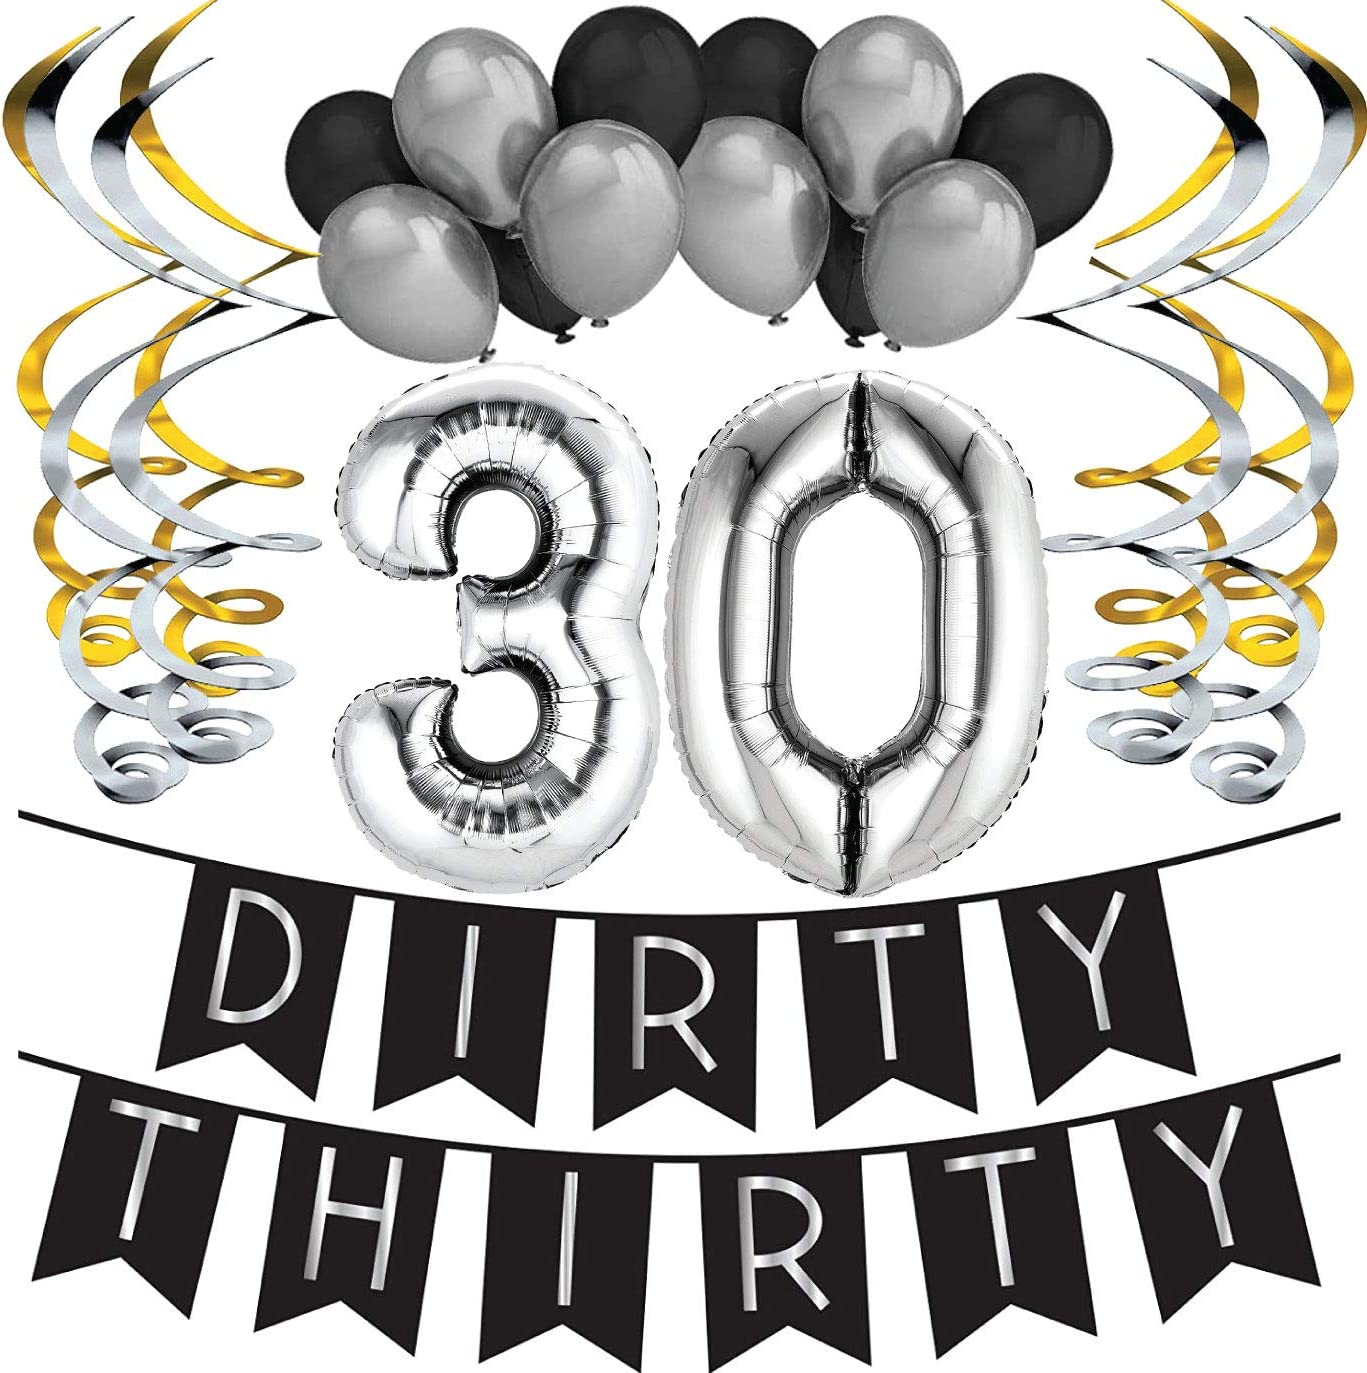 Sterling James Co. Dirty Thirty - 30th Birthday Party Pack - Black & Silver Happy Birthday Bunting, Poms, and Swirls Pack- Birthday Decorations - 30th Birthday Party Supplies